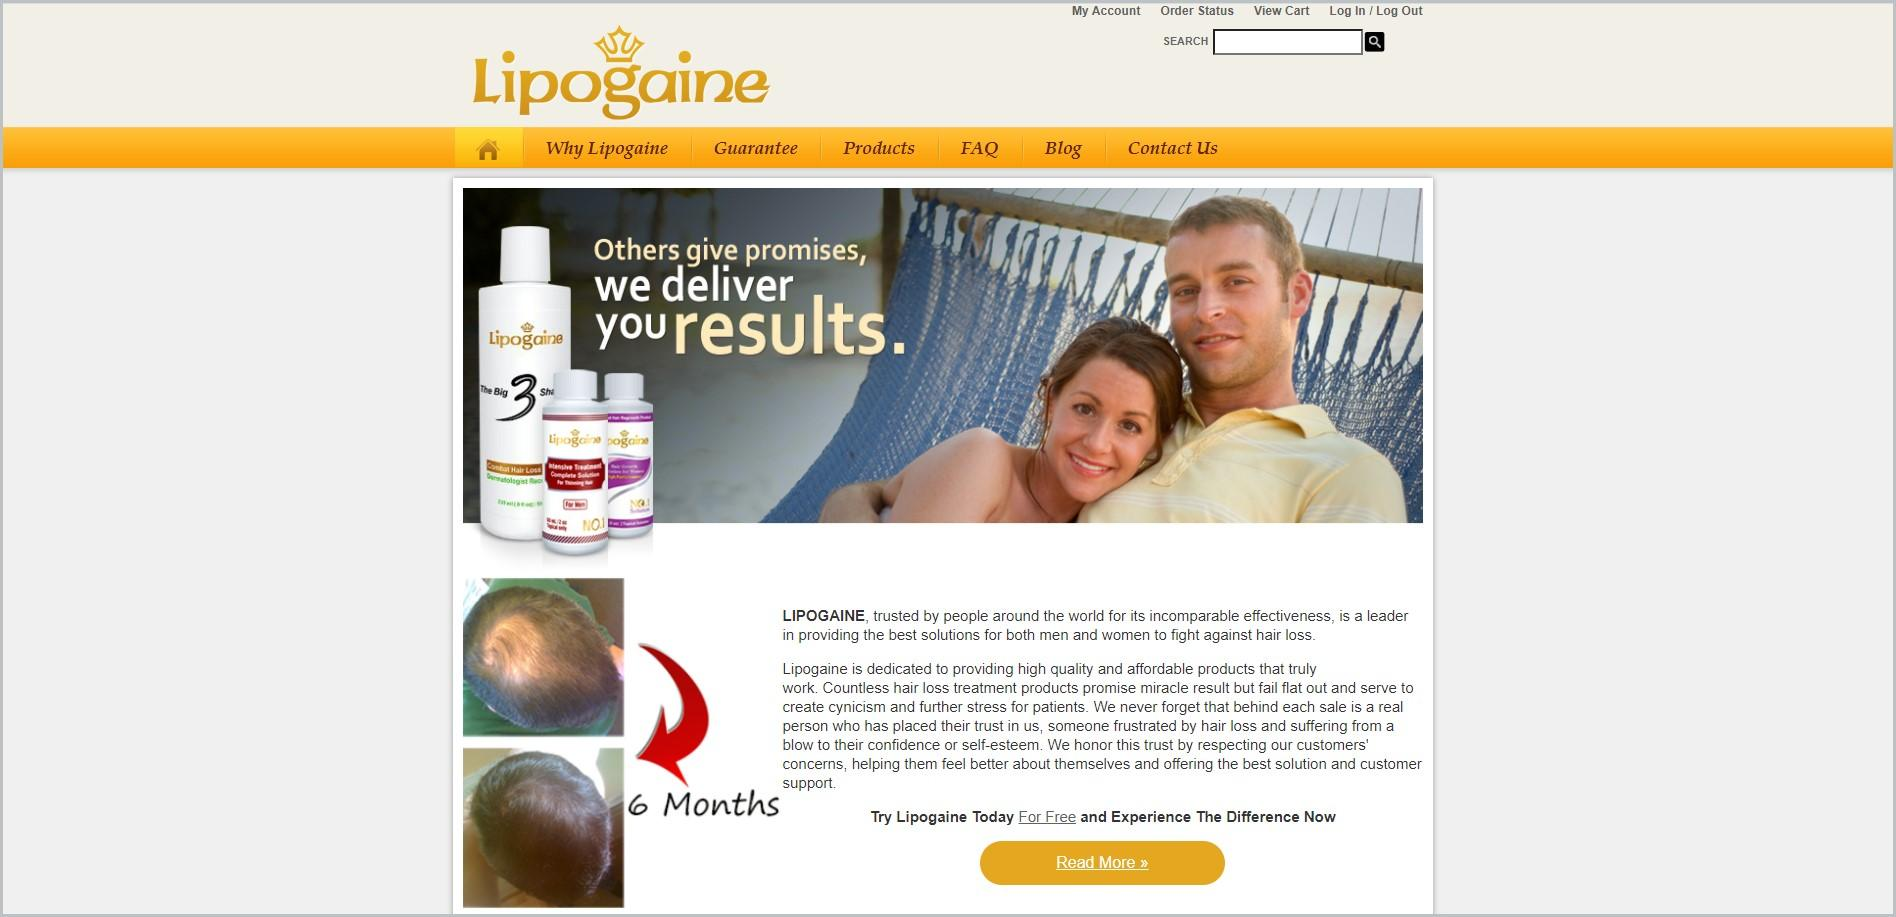 screenshot of Lipogaine homepage with yellow navigation bar and the website's name above it, it showcases an image of a couple on a hammock and an image of the website's products